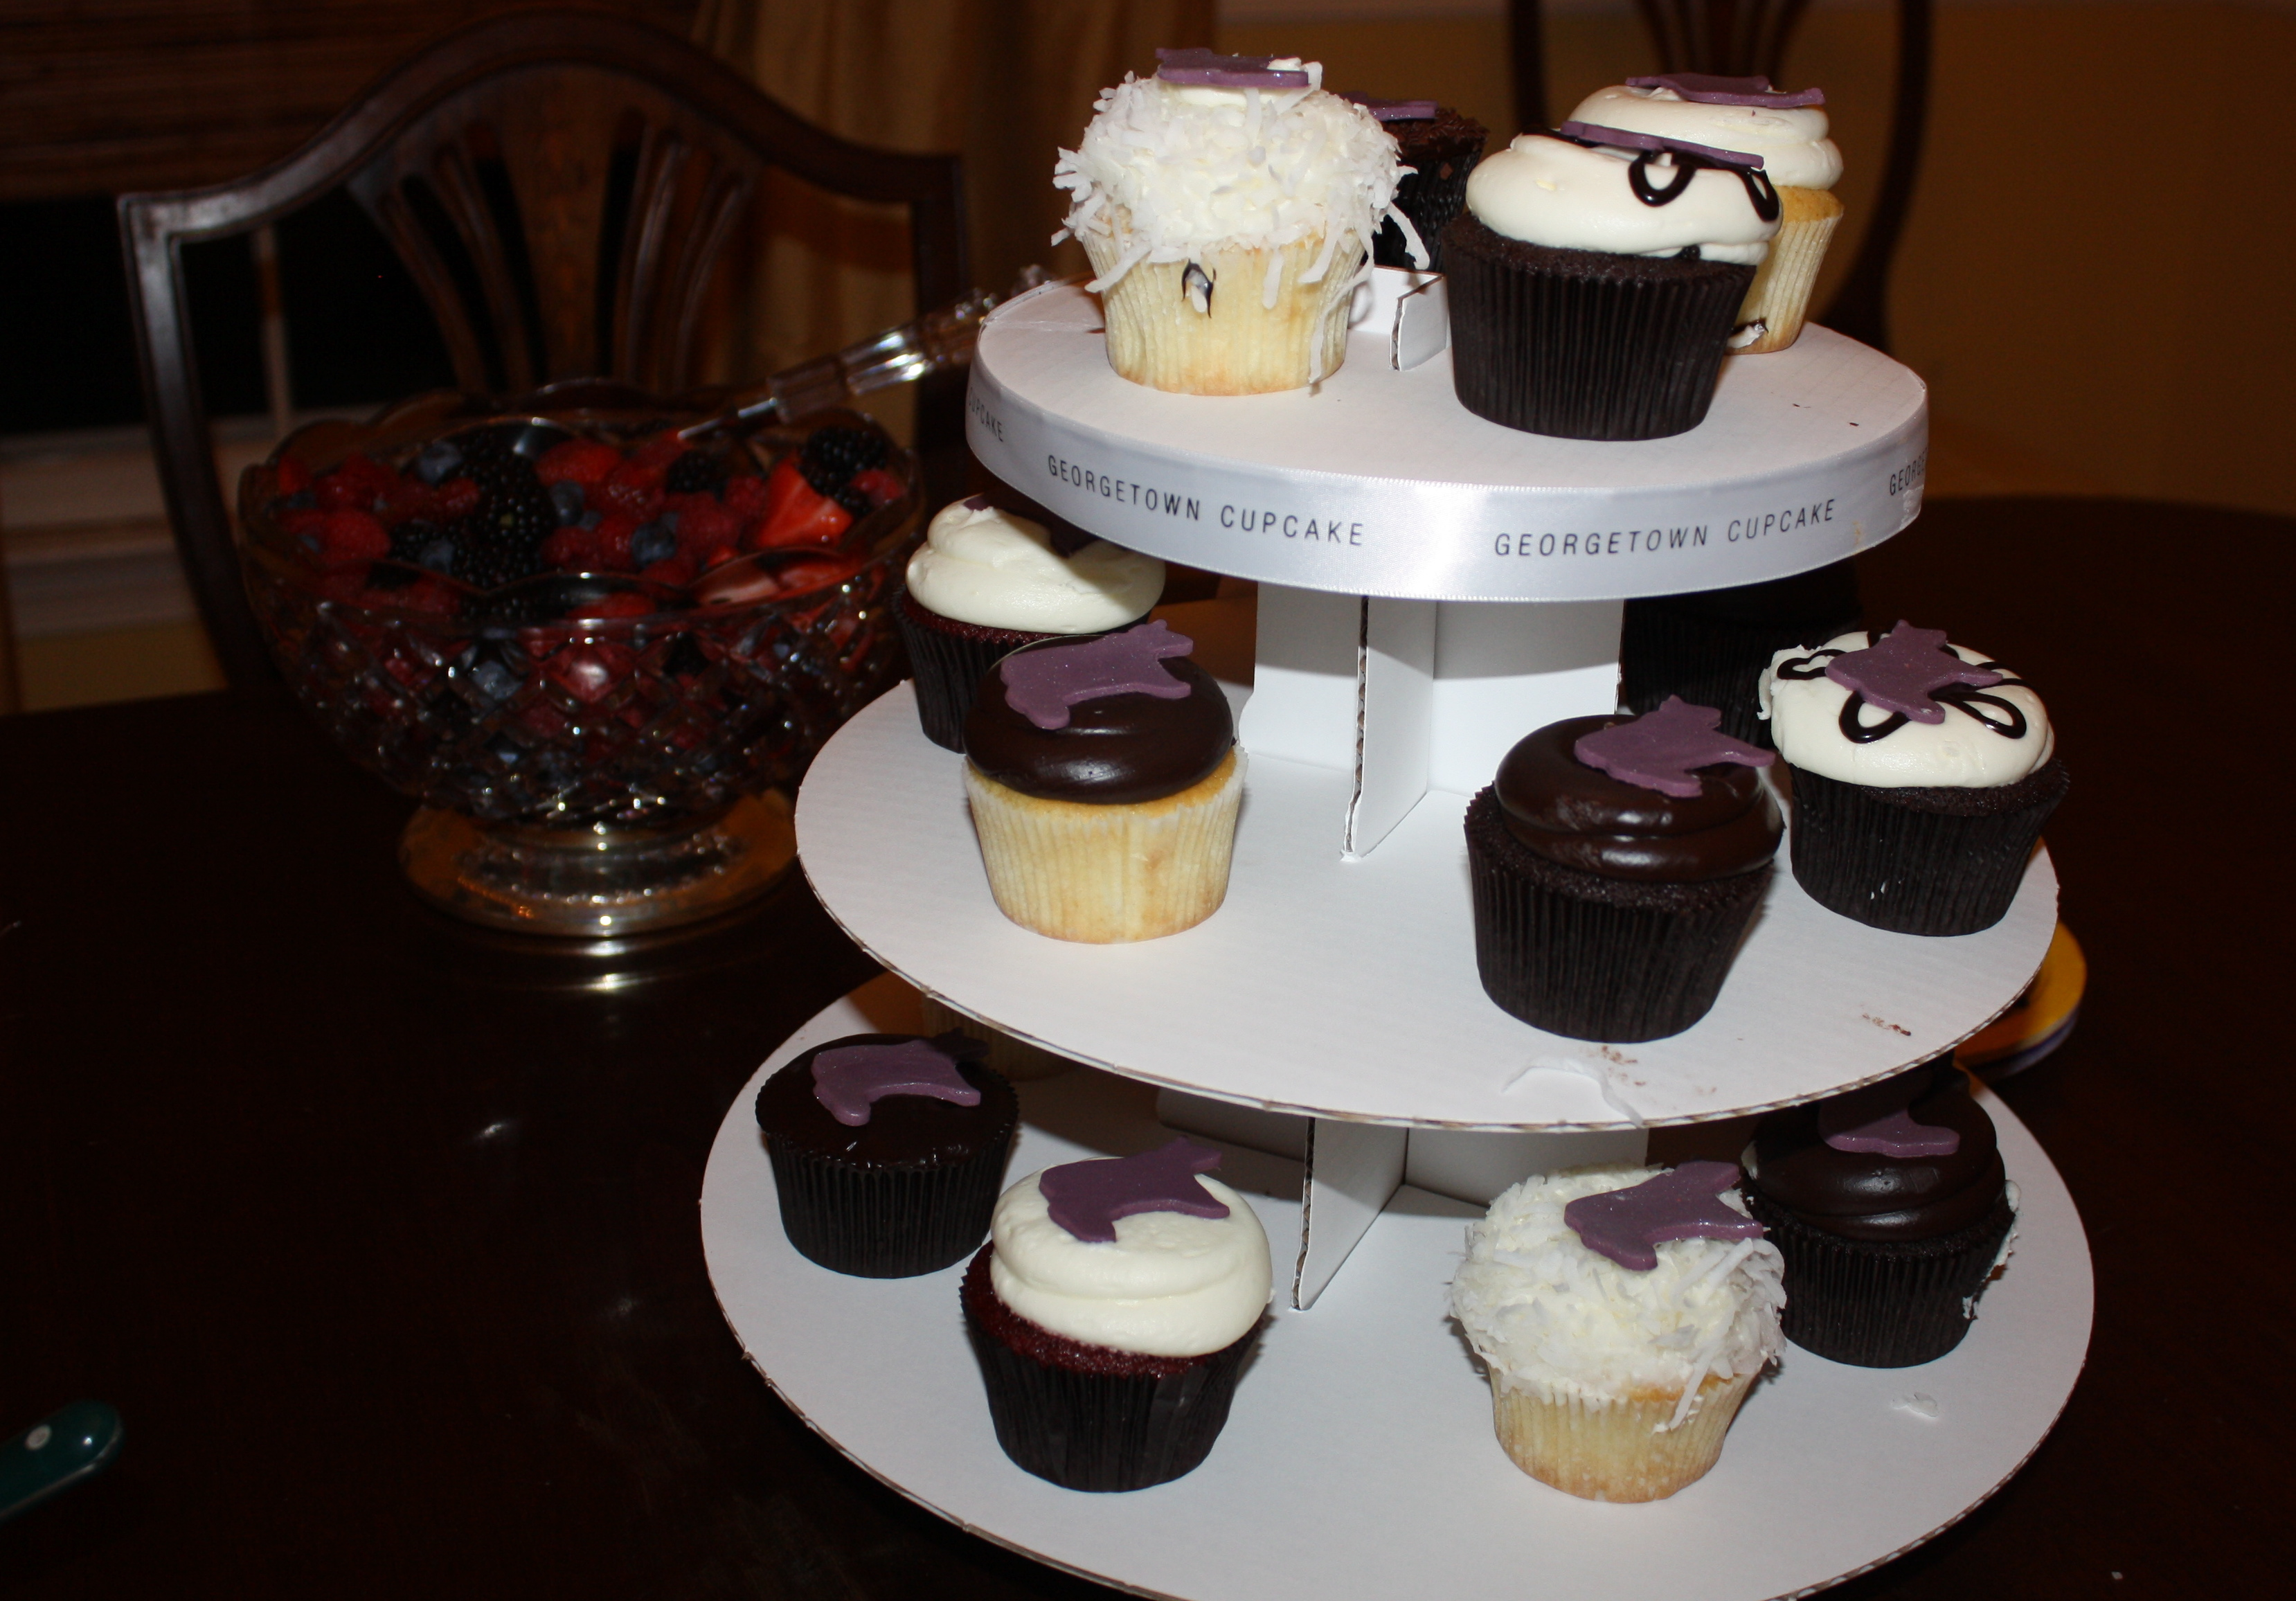 The First Time Georgetown Cupcakes Has Made Custom